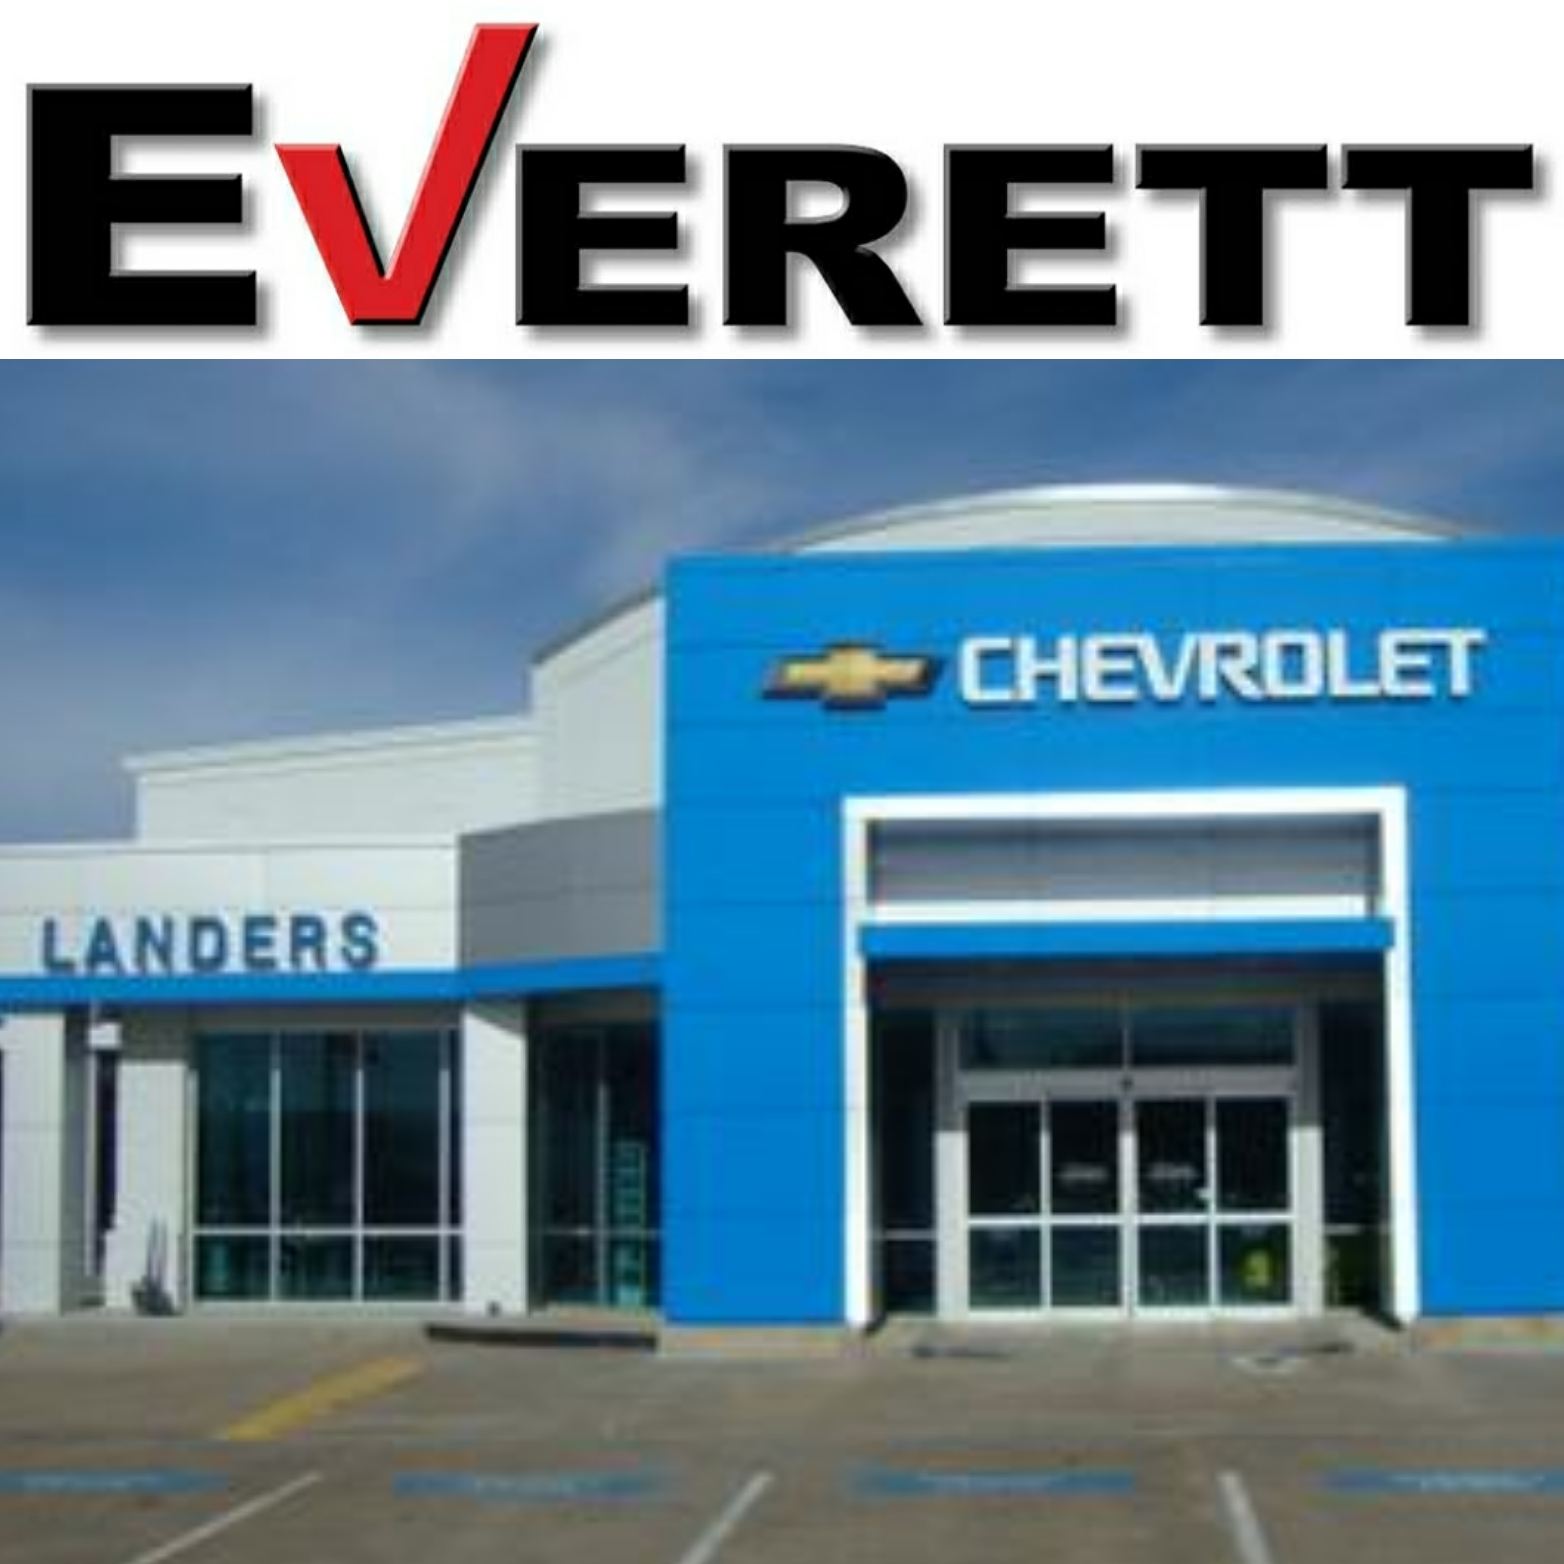 Landers Cdj Landers Ford In Benton Sells Dealerships